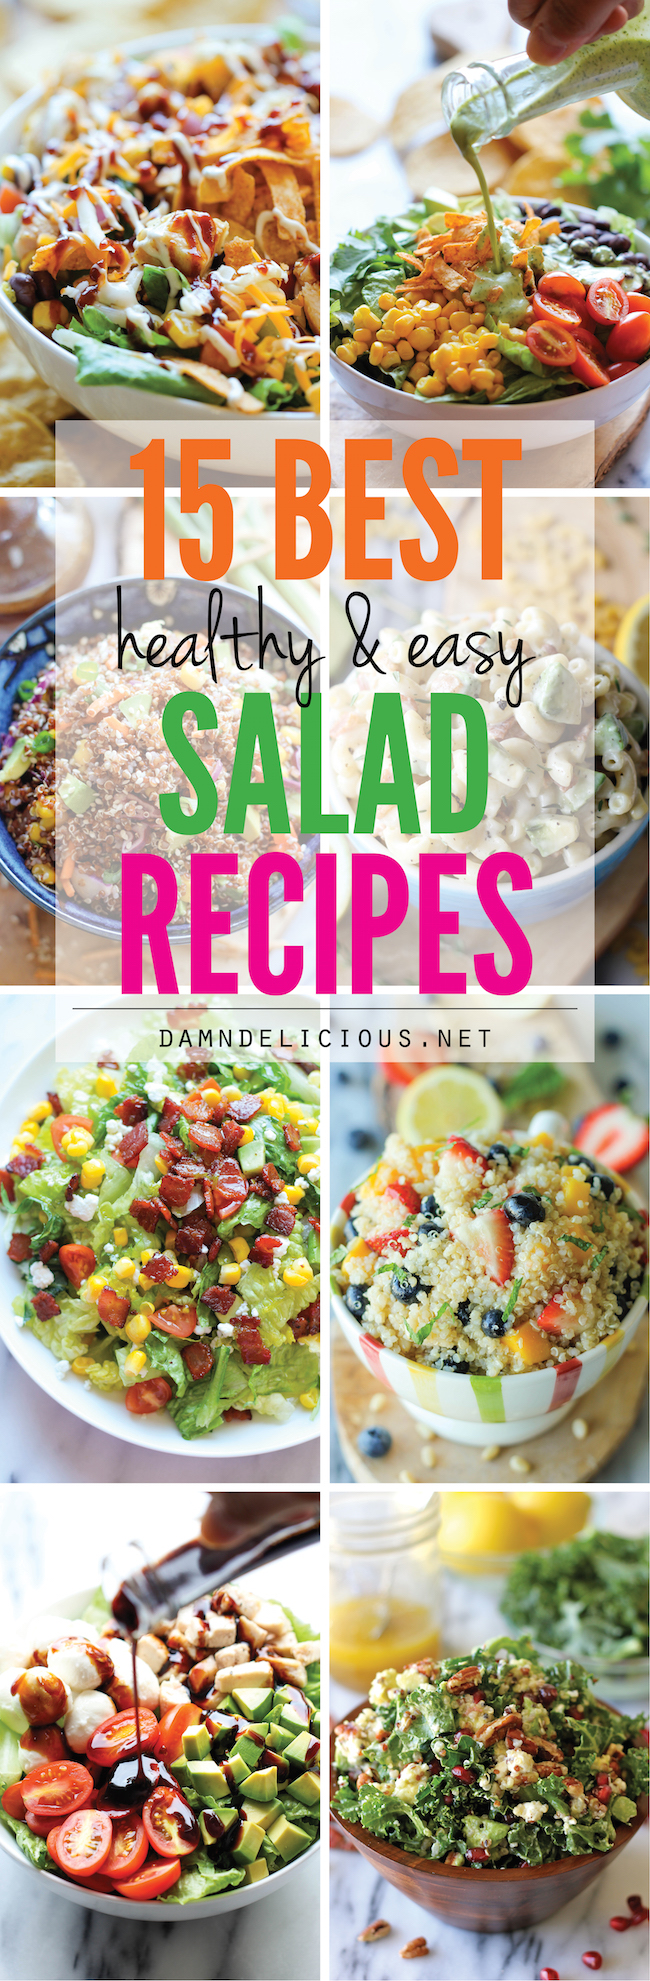 The most delicious birthday salads - 7 step by step recipes 59